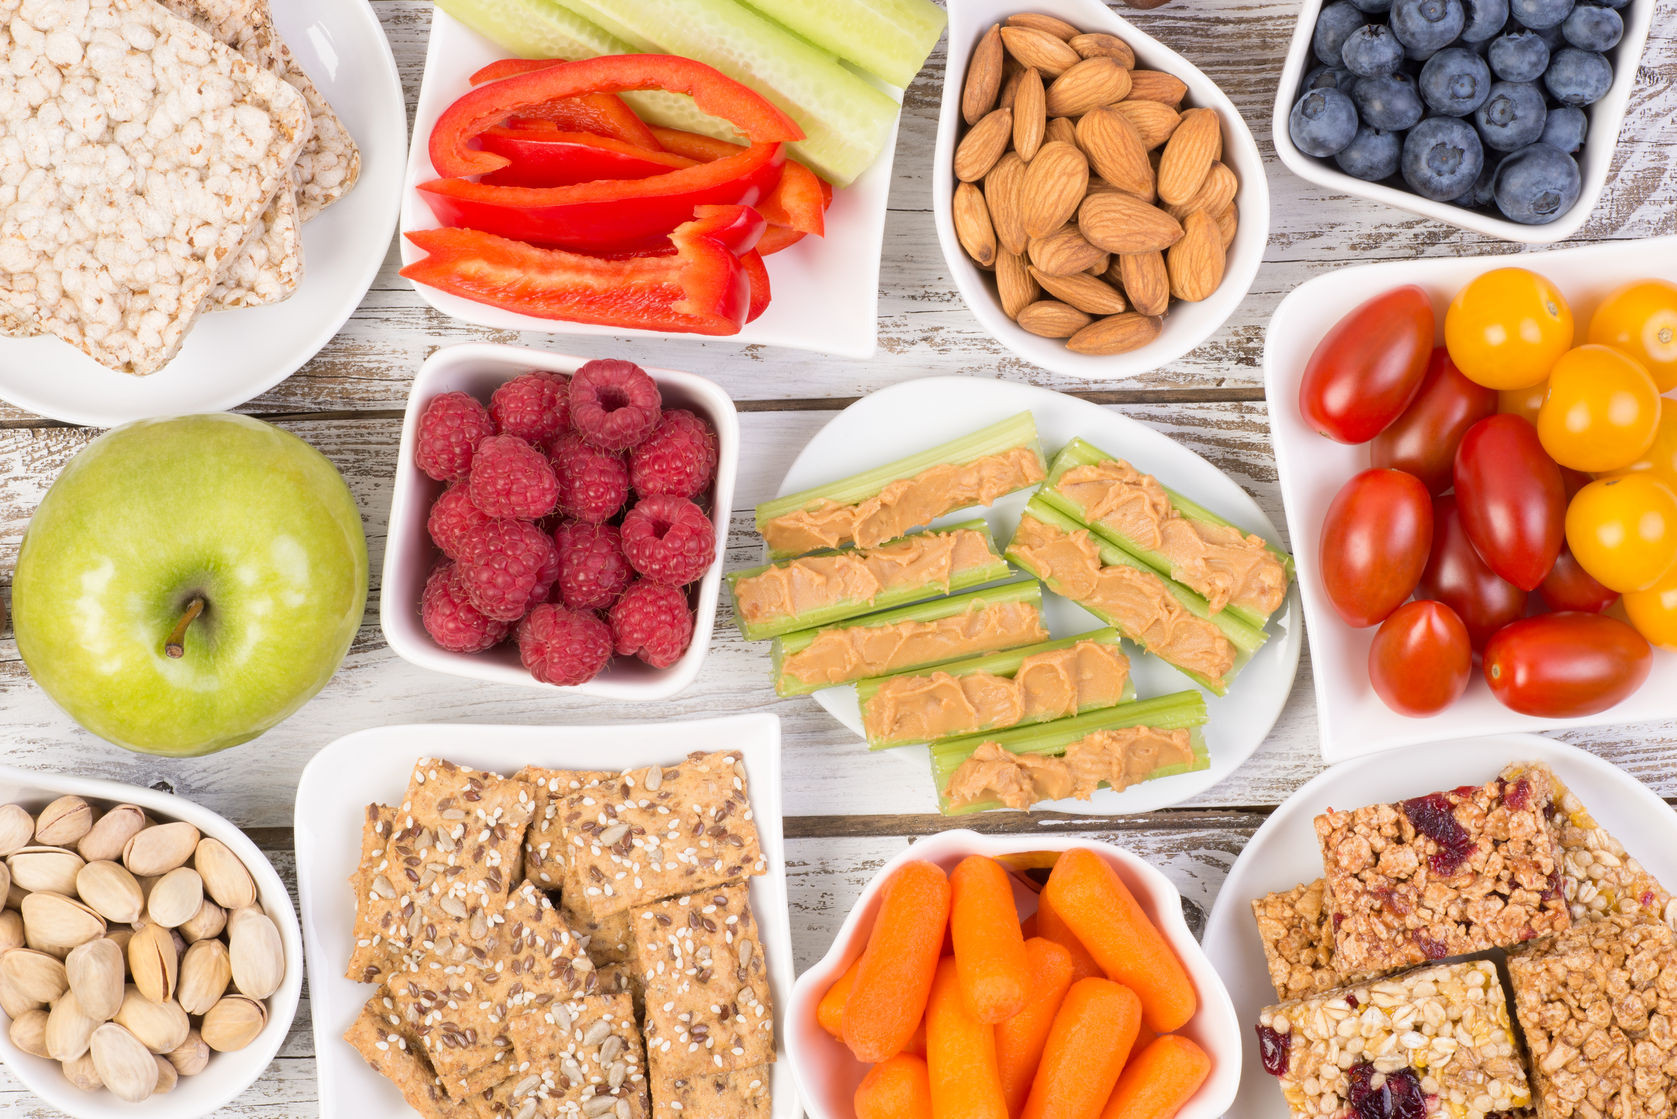 Healthy Snacks Images  5 Healthy Snack Ideas That Require NO Skills Nutritious Life